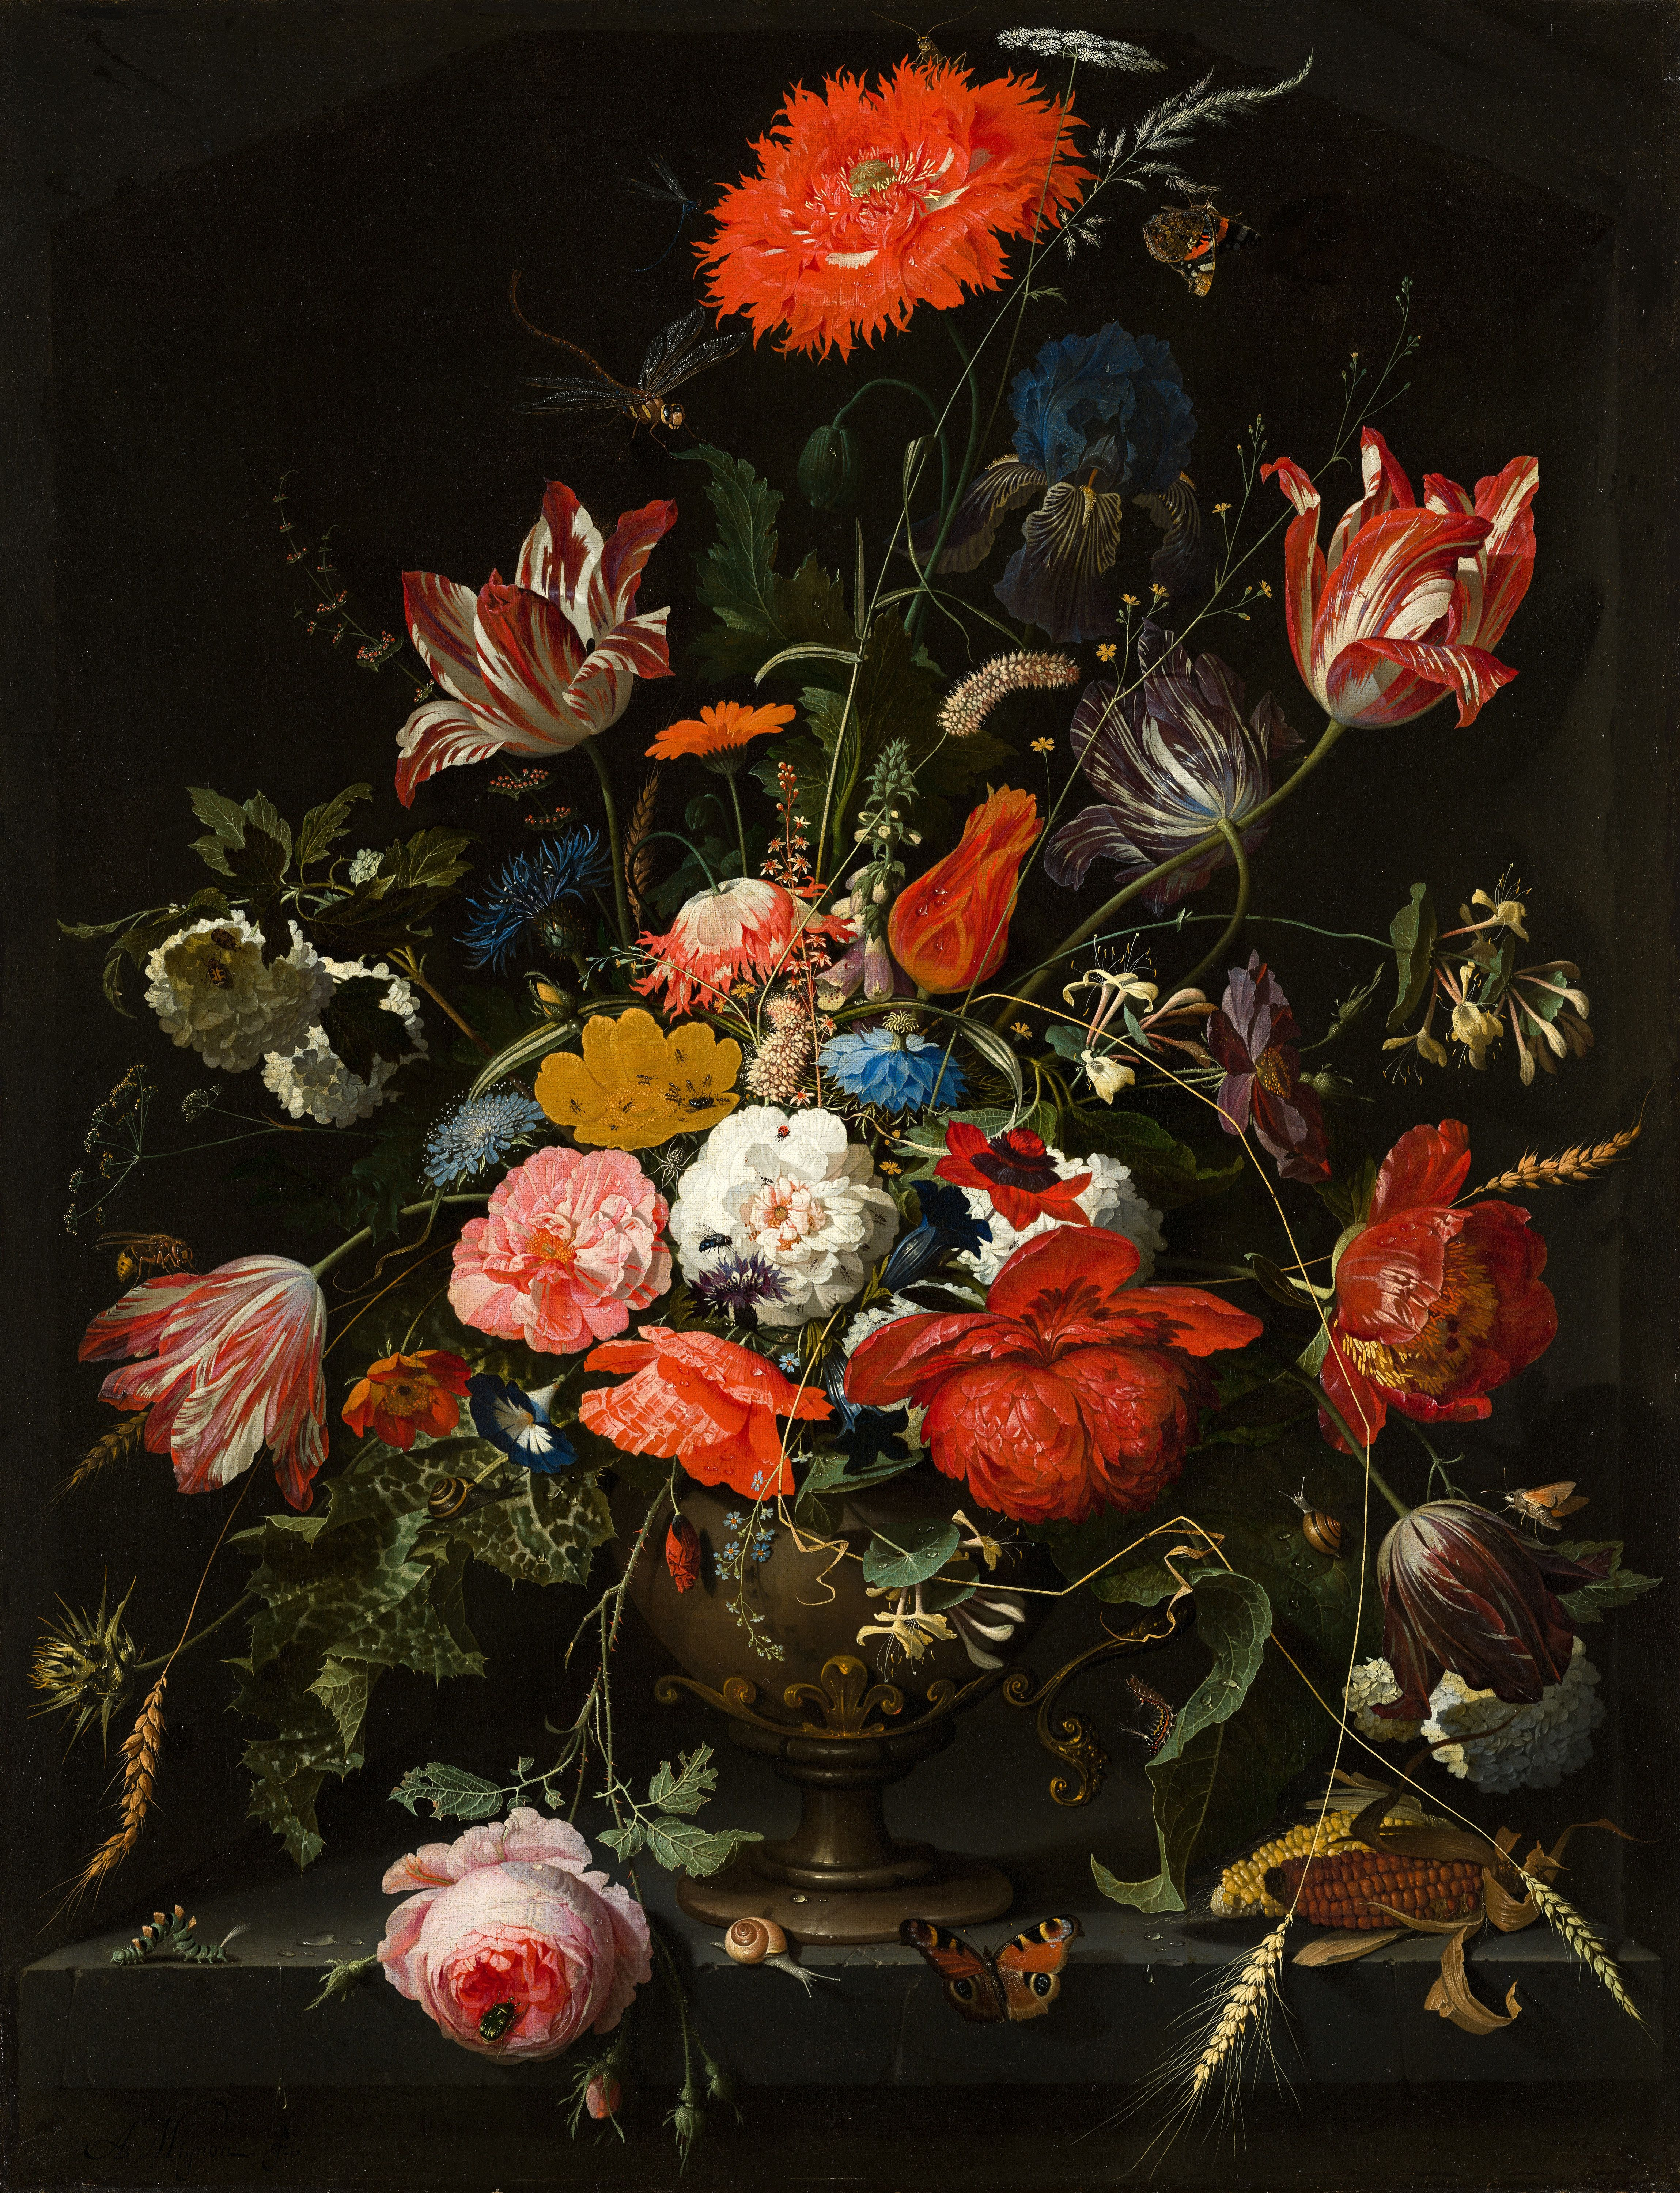 Flowers In A Metal Vase The Hague Netherlands In 2020 Flower Painting Fine Art Painting Oil Famous Art Paintings